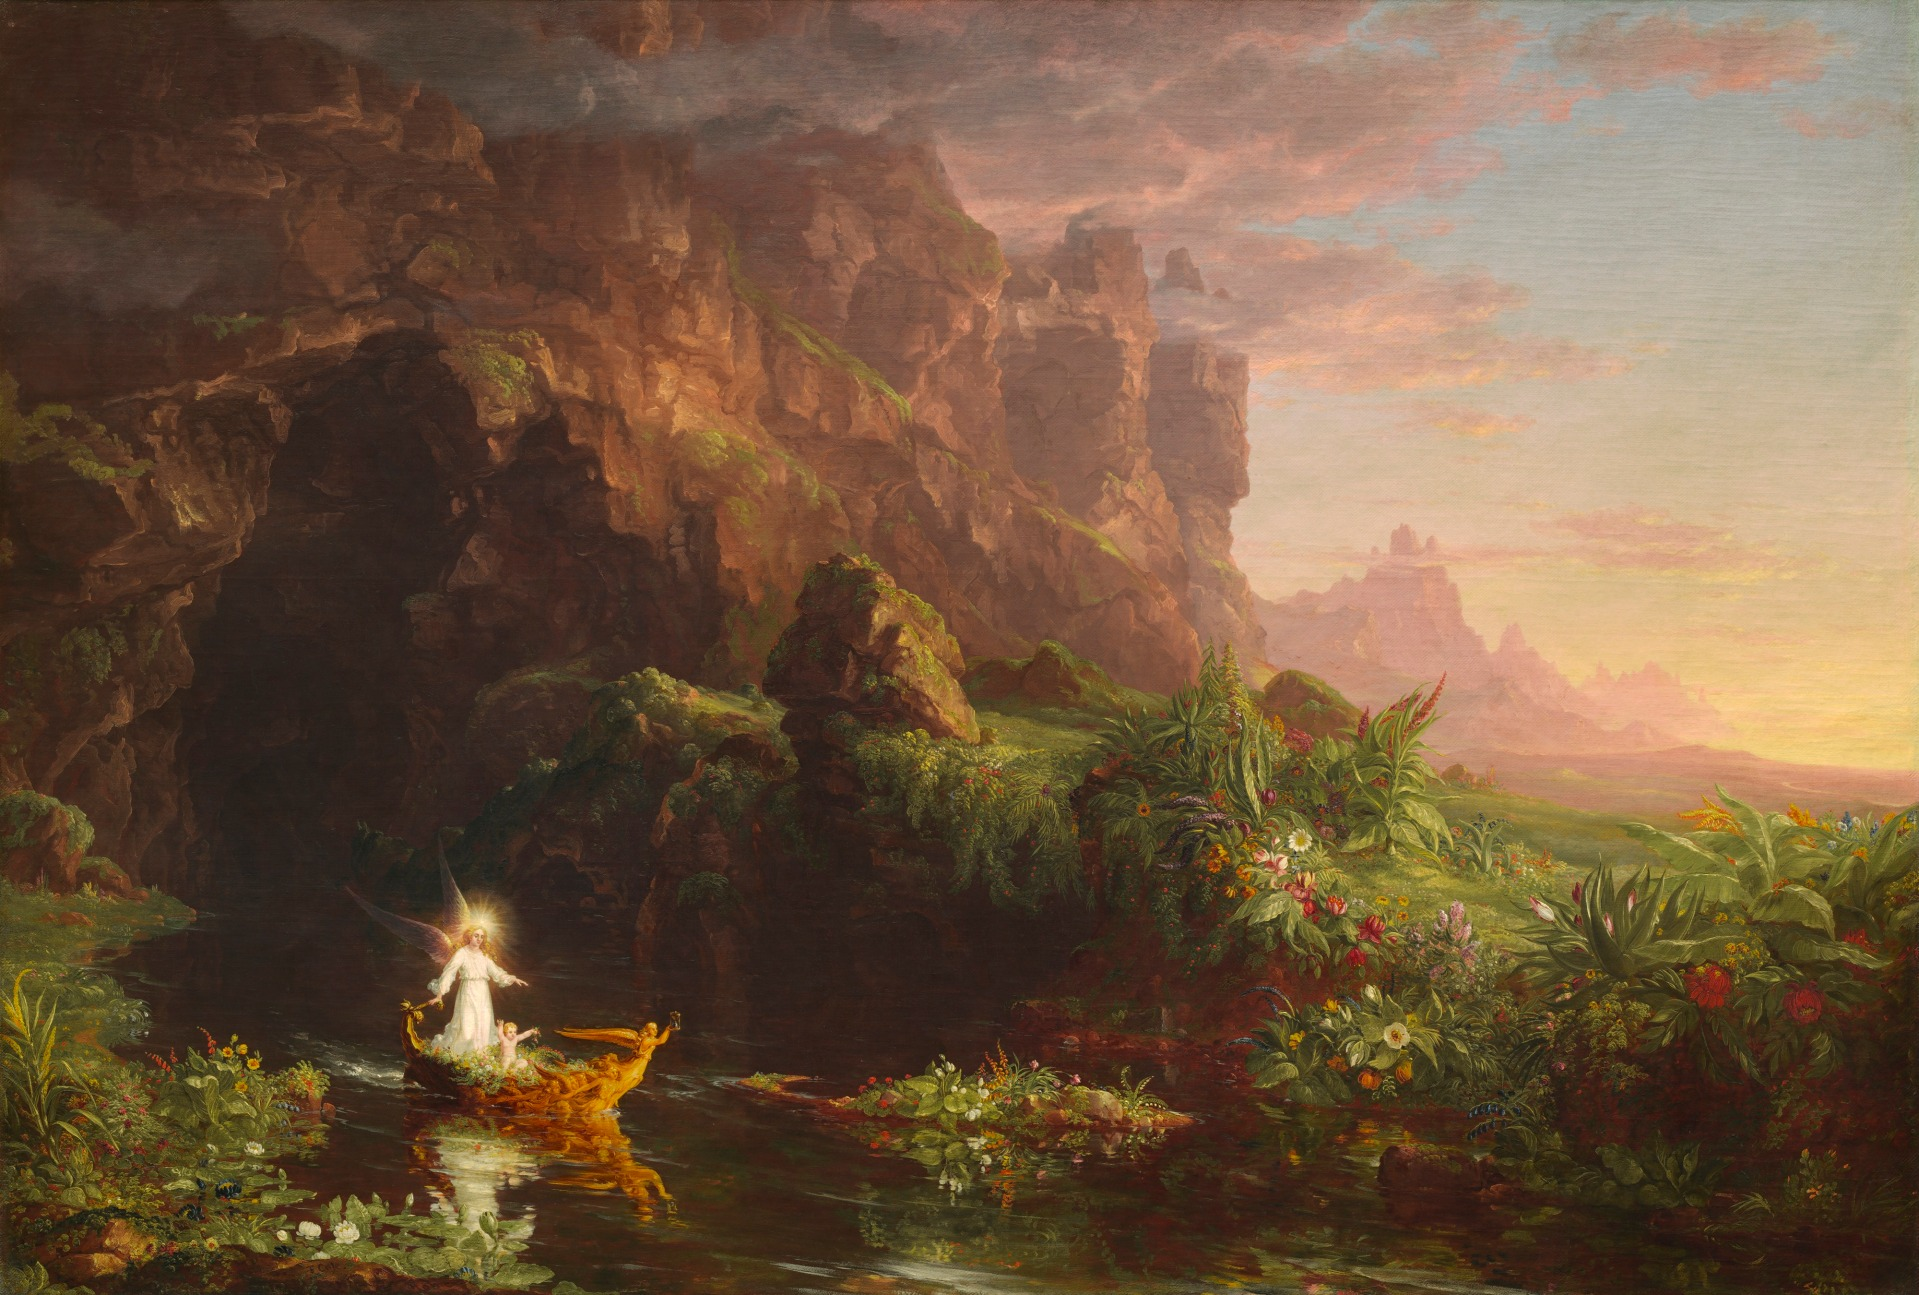 Thomas Cole, The Voyage of Life - Childhood